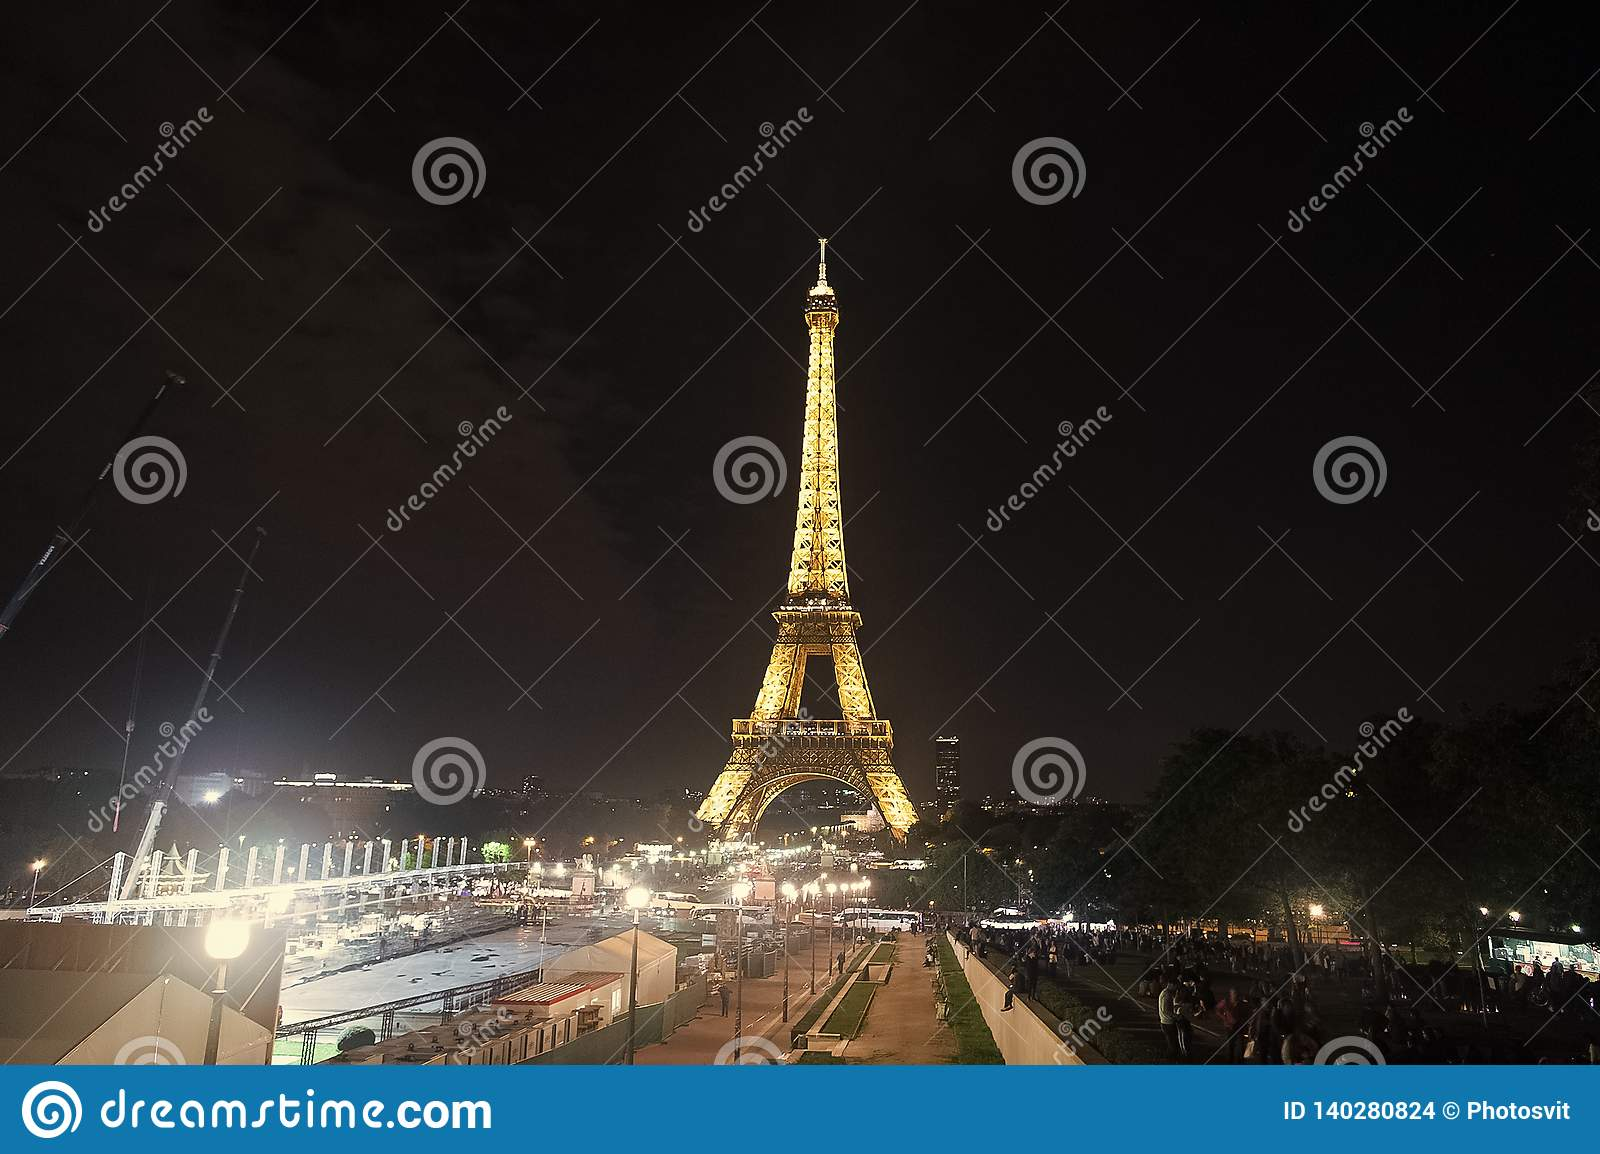 Eiffel tower in paris. Eiffel tower is symbol of love and paris. Romantic life background